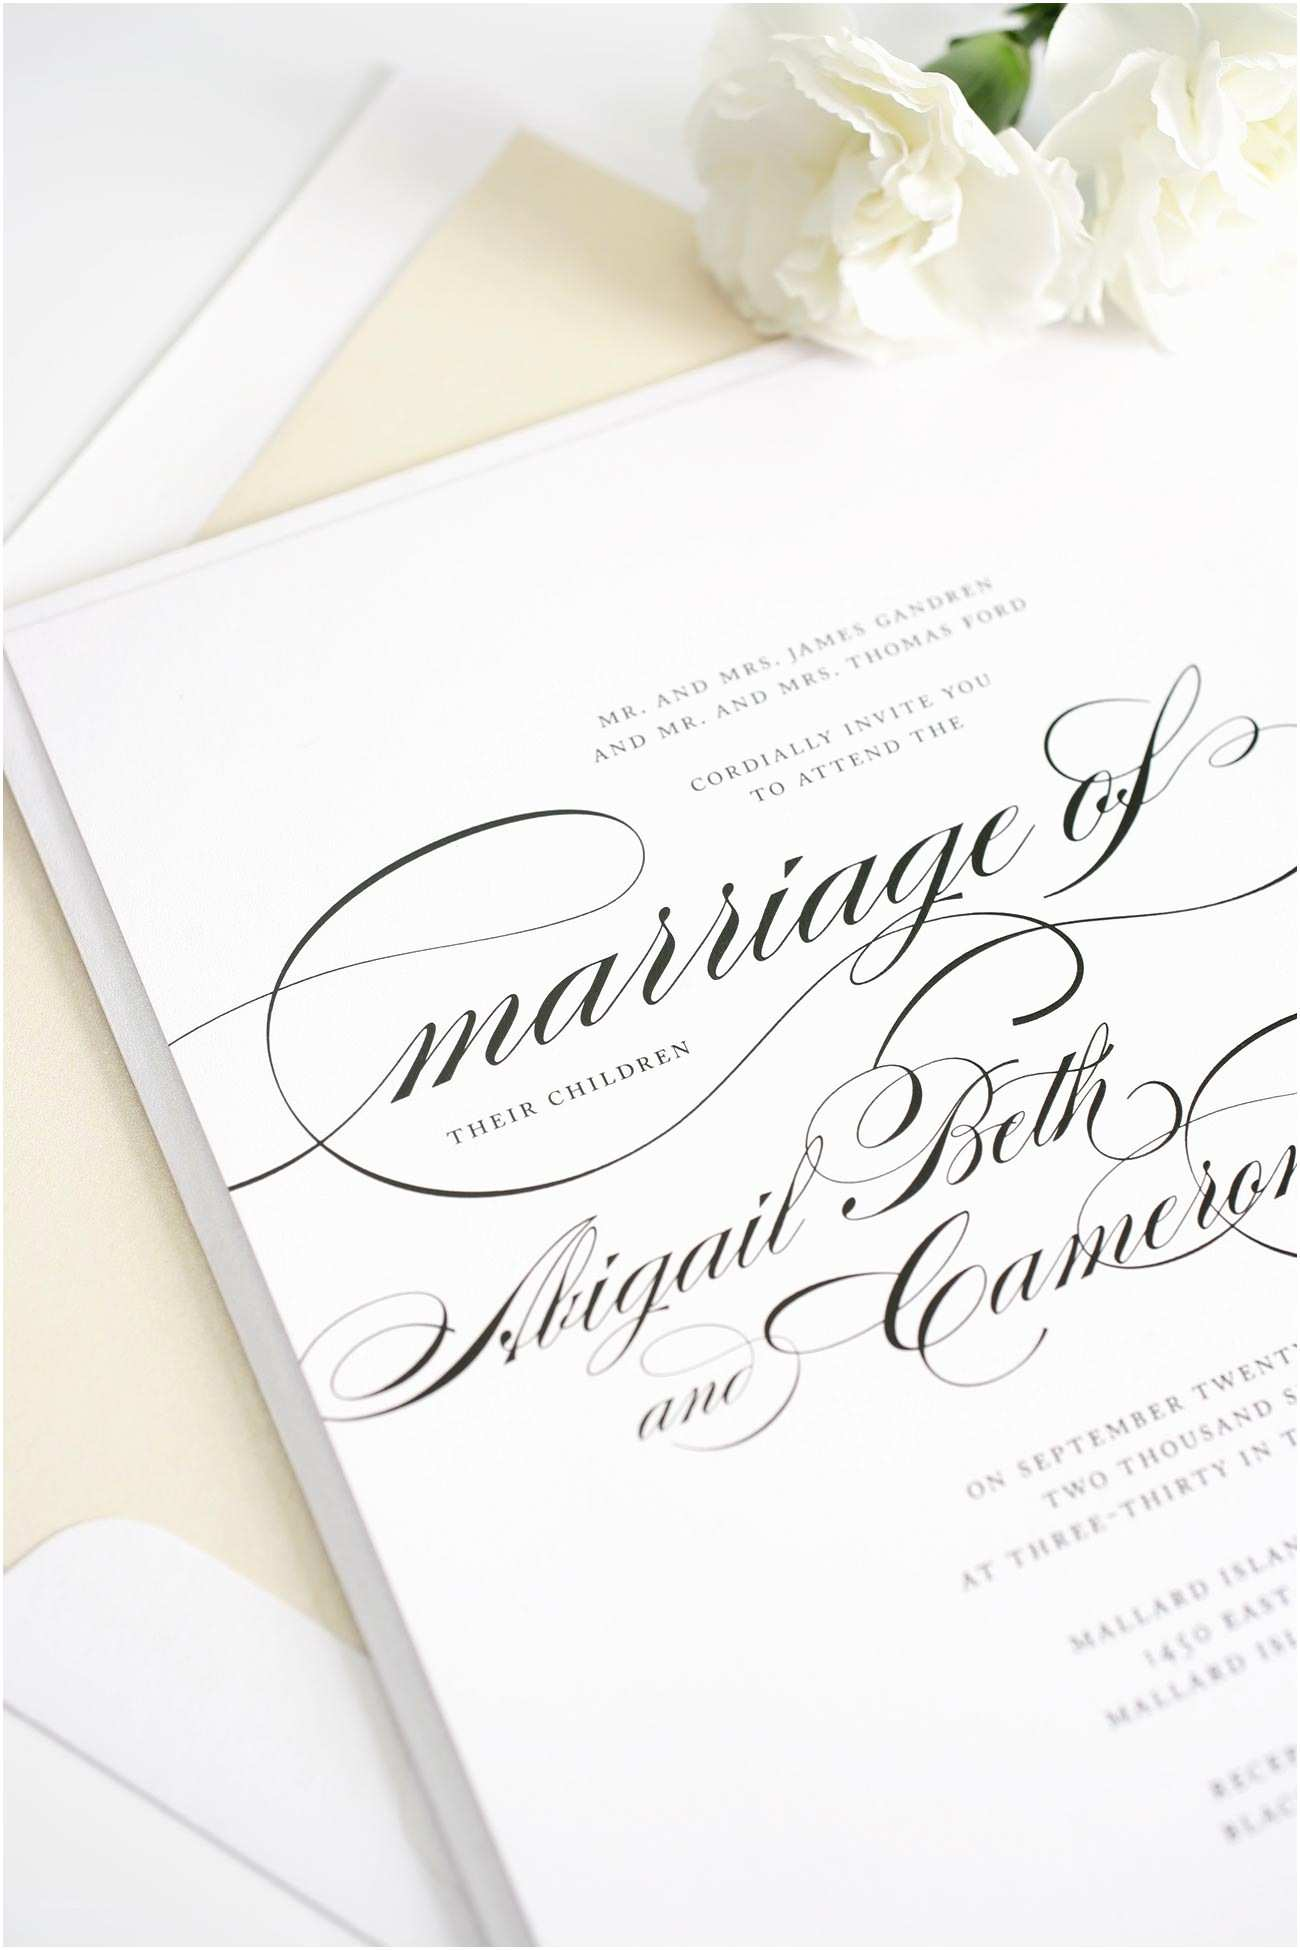 The Most Beautiful Wedding Invitations Beautiful Wedding Invitations with Swirls and Swashes